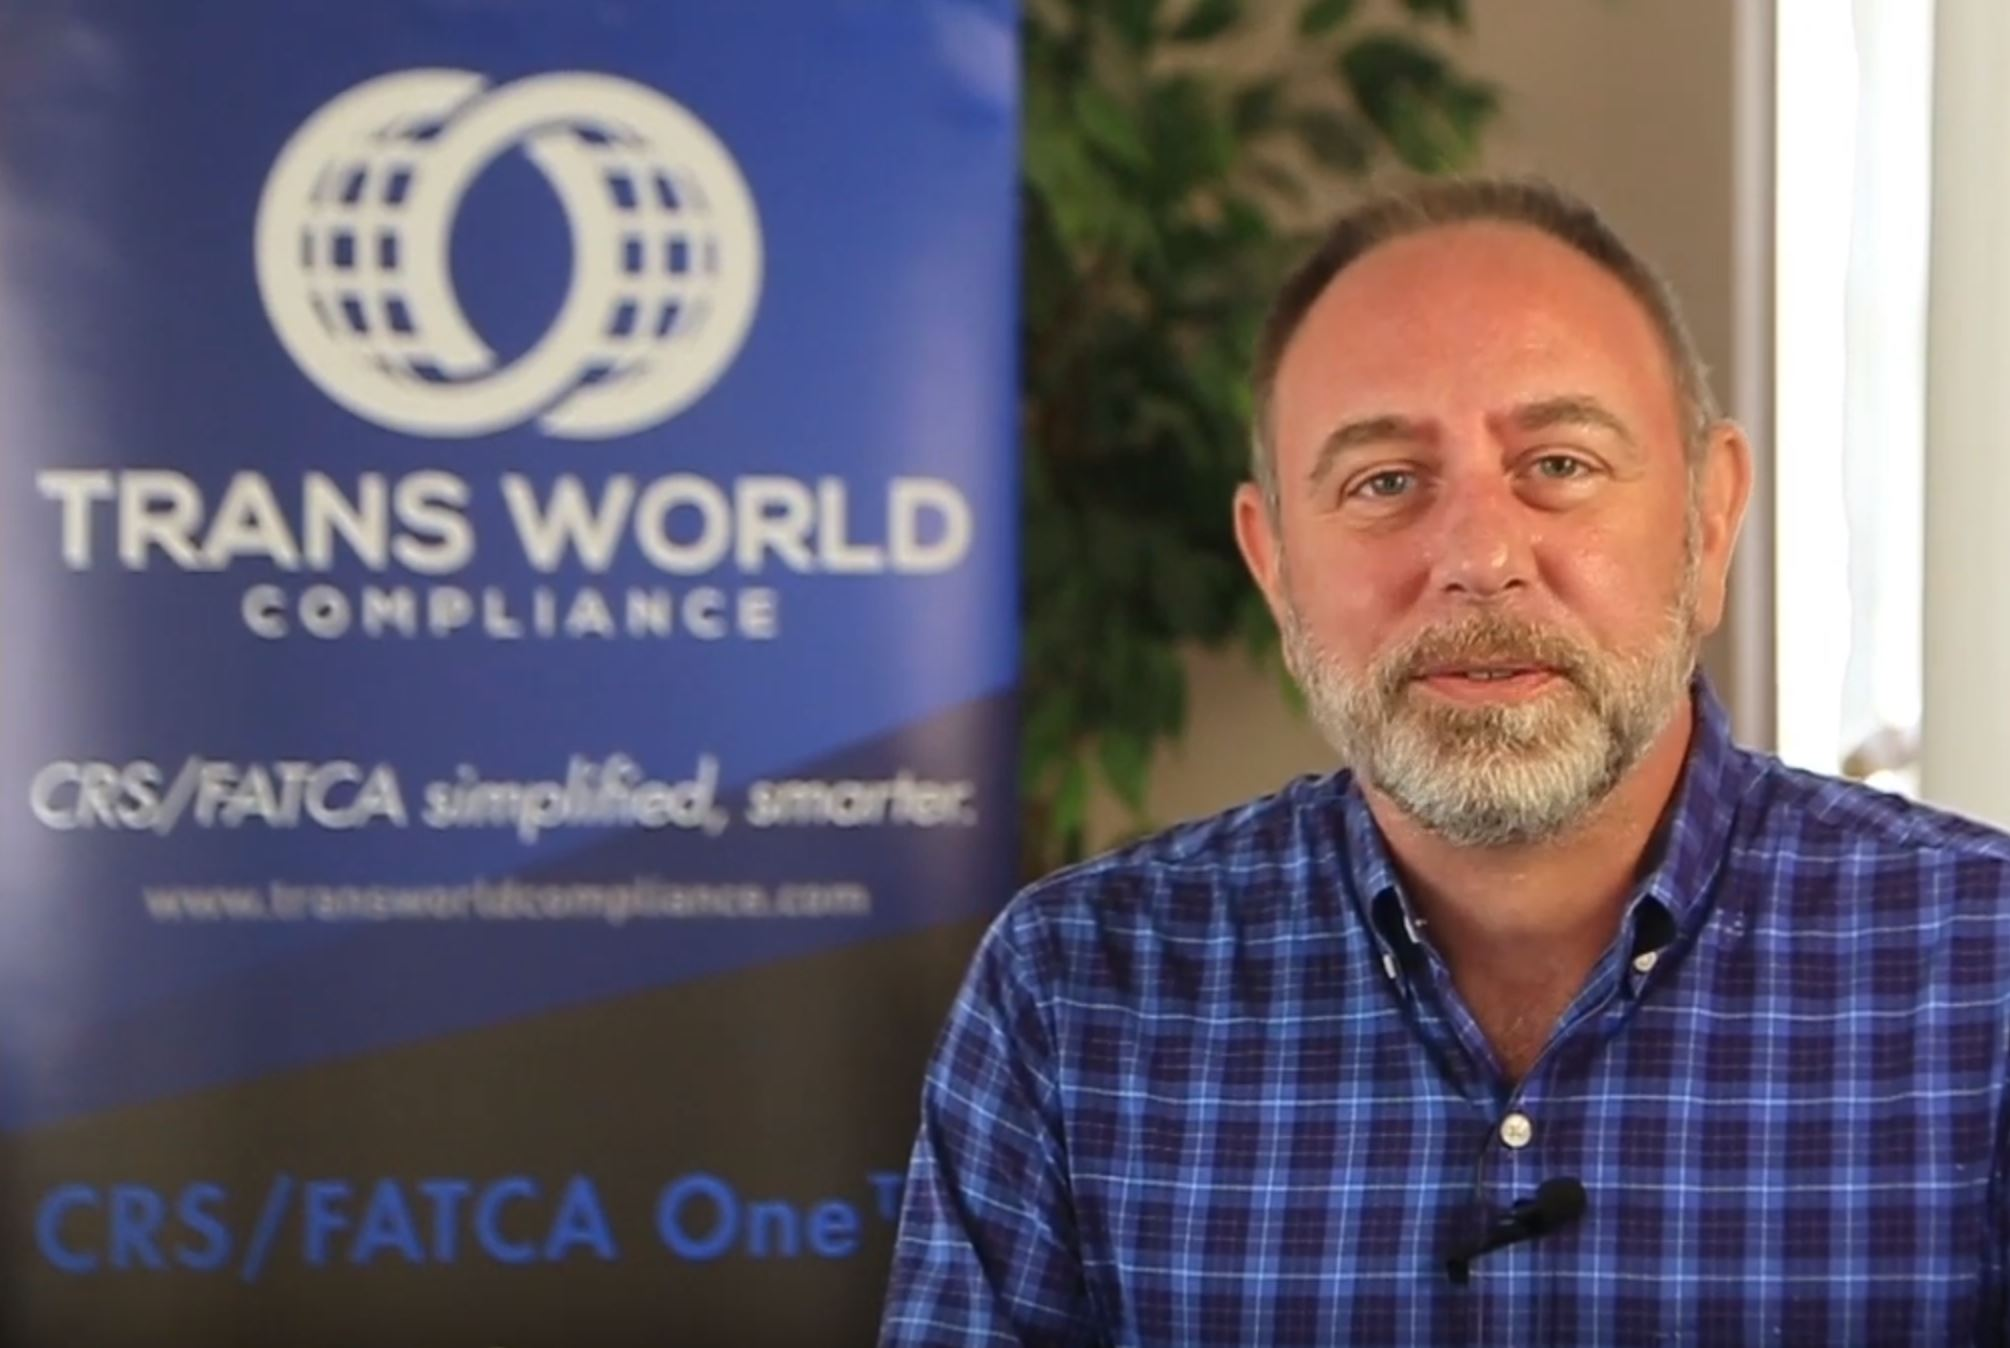 CRS/FATCA One